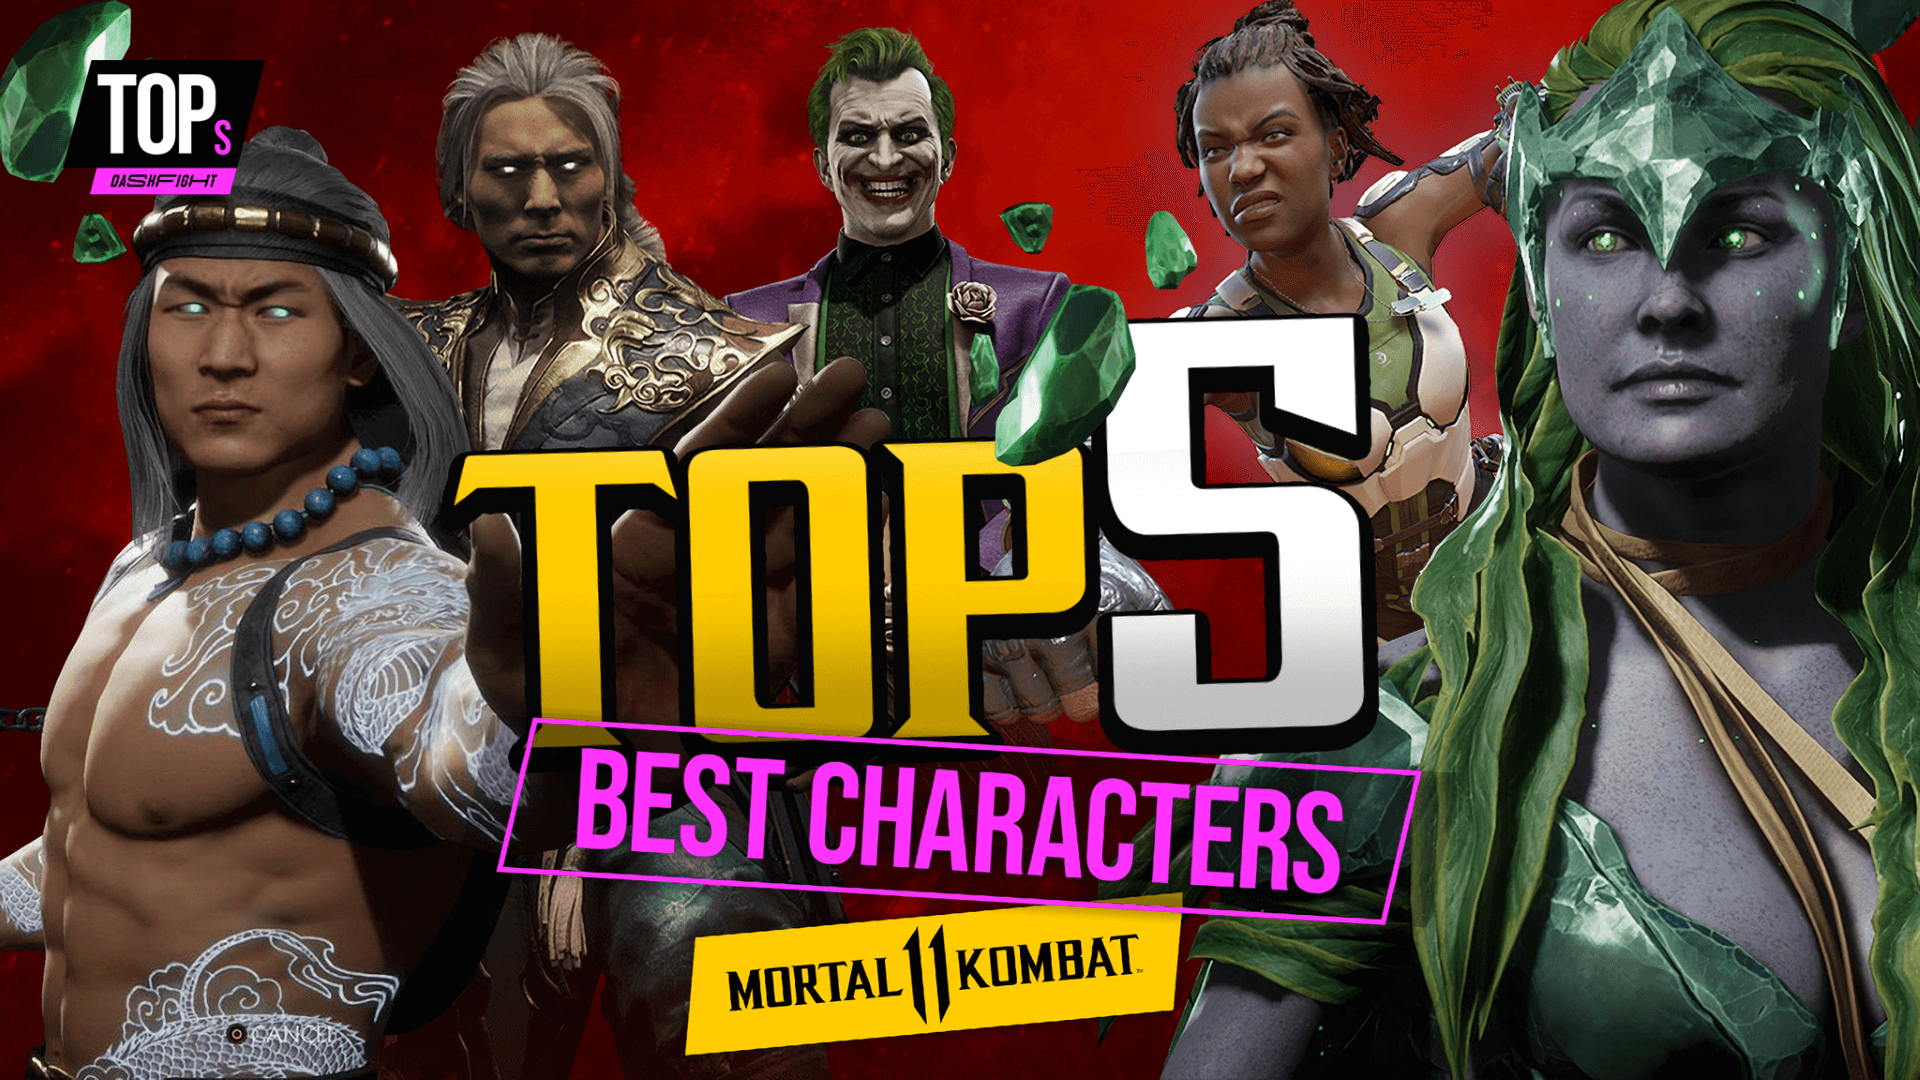 Top 5 Best Characters to Play in MK11